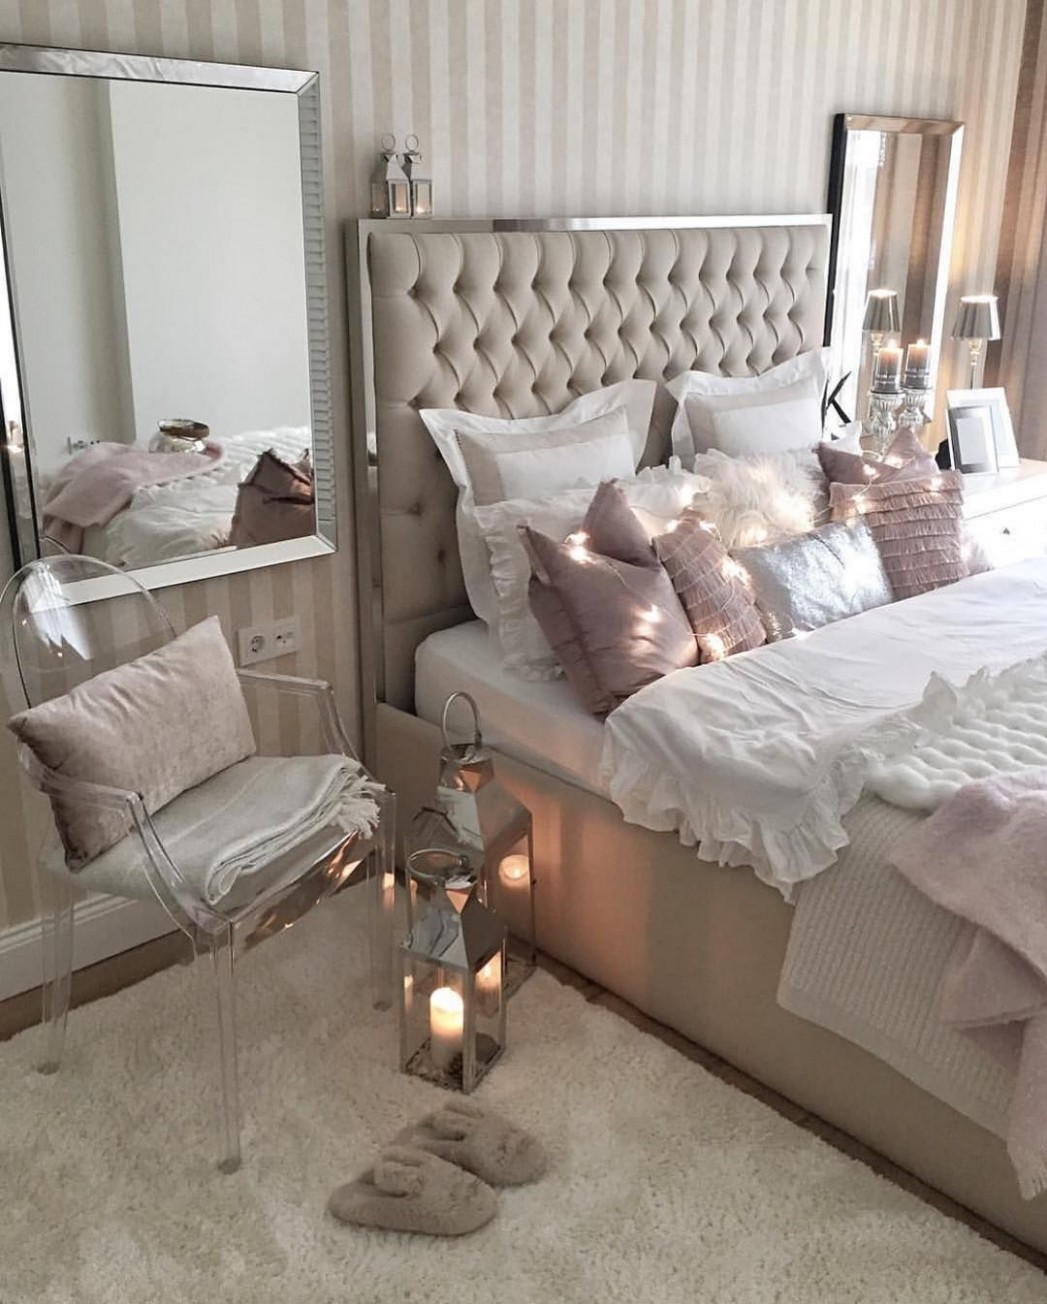 "Interior & Decor Inspiration on Instagram: ""Cozy bedroom vibes  - Bedroom Ideas Instagram"